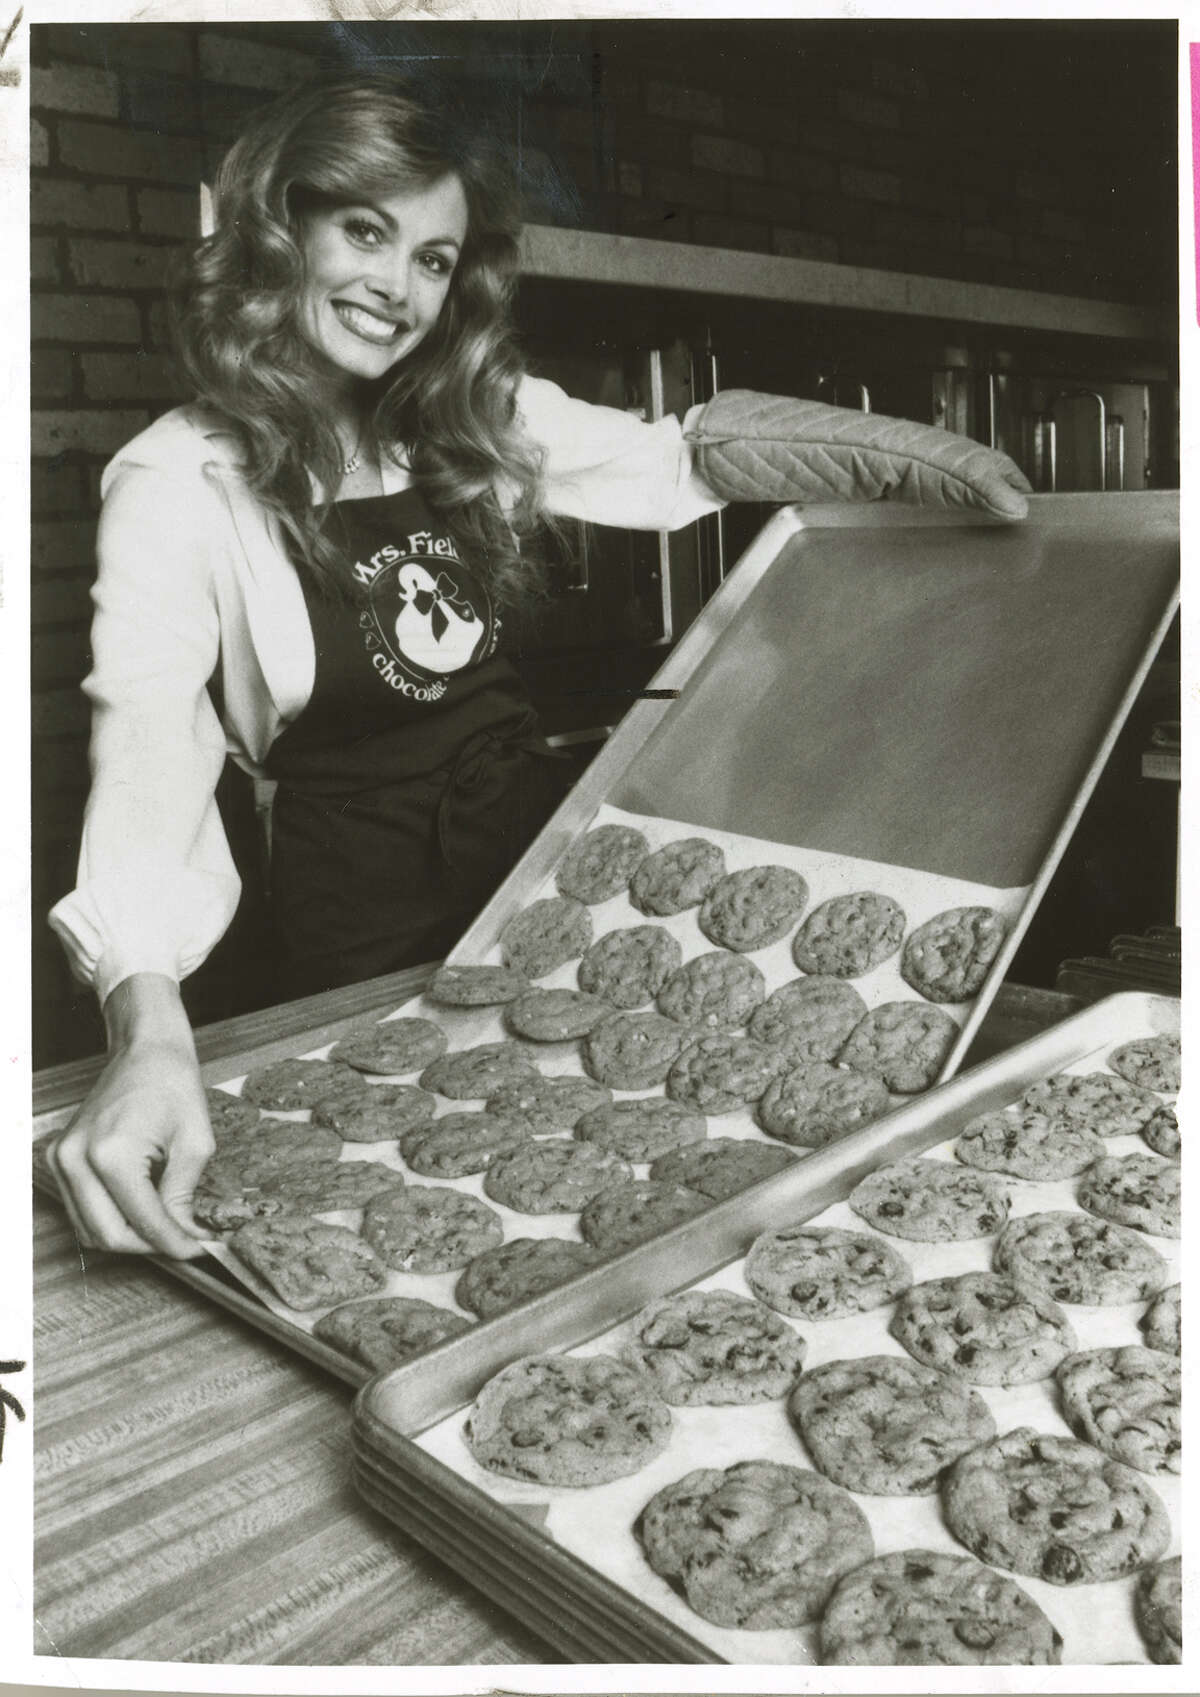 Debbi Fields, the founder of Mrs. Fields Cookies in a 1982 photo from The San Francisco Chronicle archive.